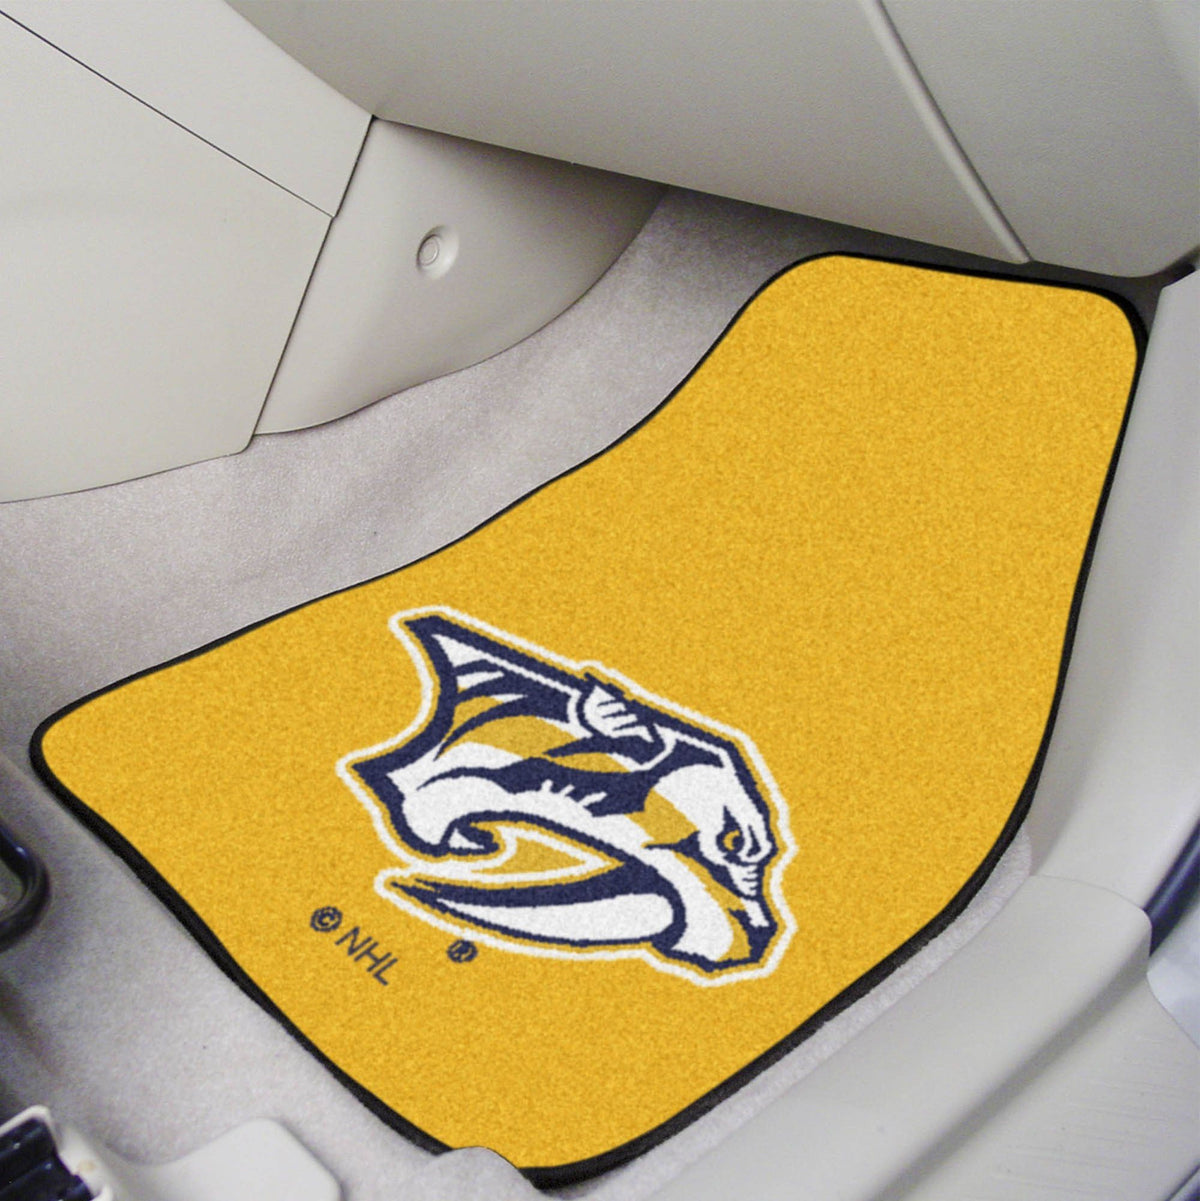 NHL - Carpet Car Mat, 2-Piece Set NHL Mats, Front Car Mats, 2-pc Carpet Car Mat Set, NHL, Auto Fan Mats Nashville Predators 2